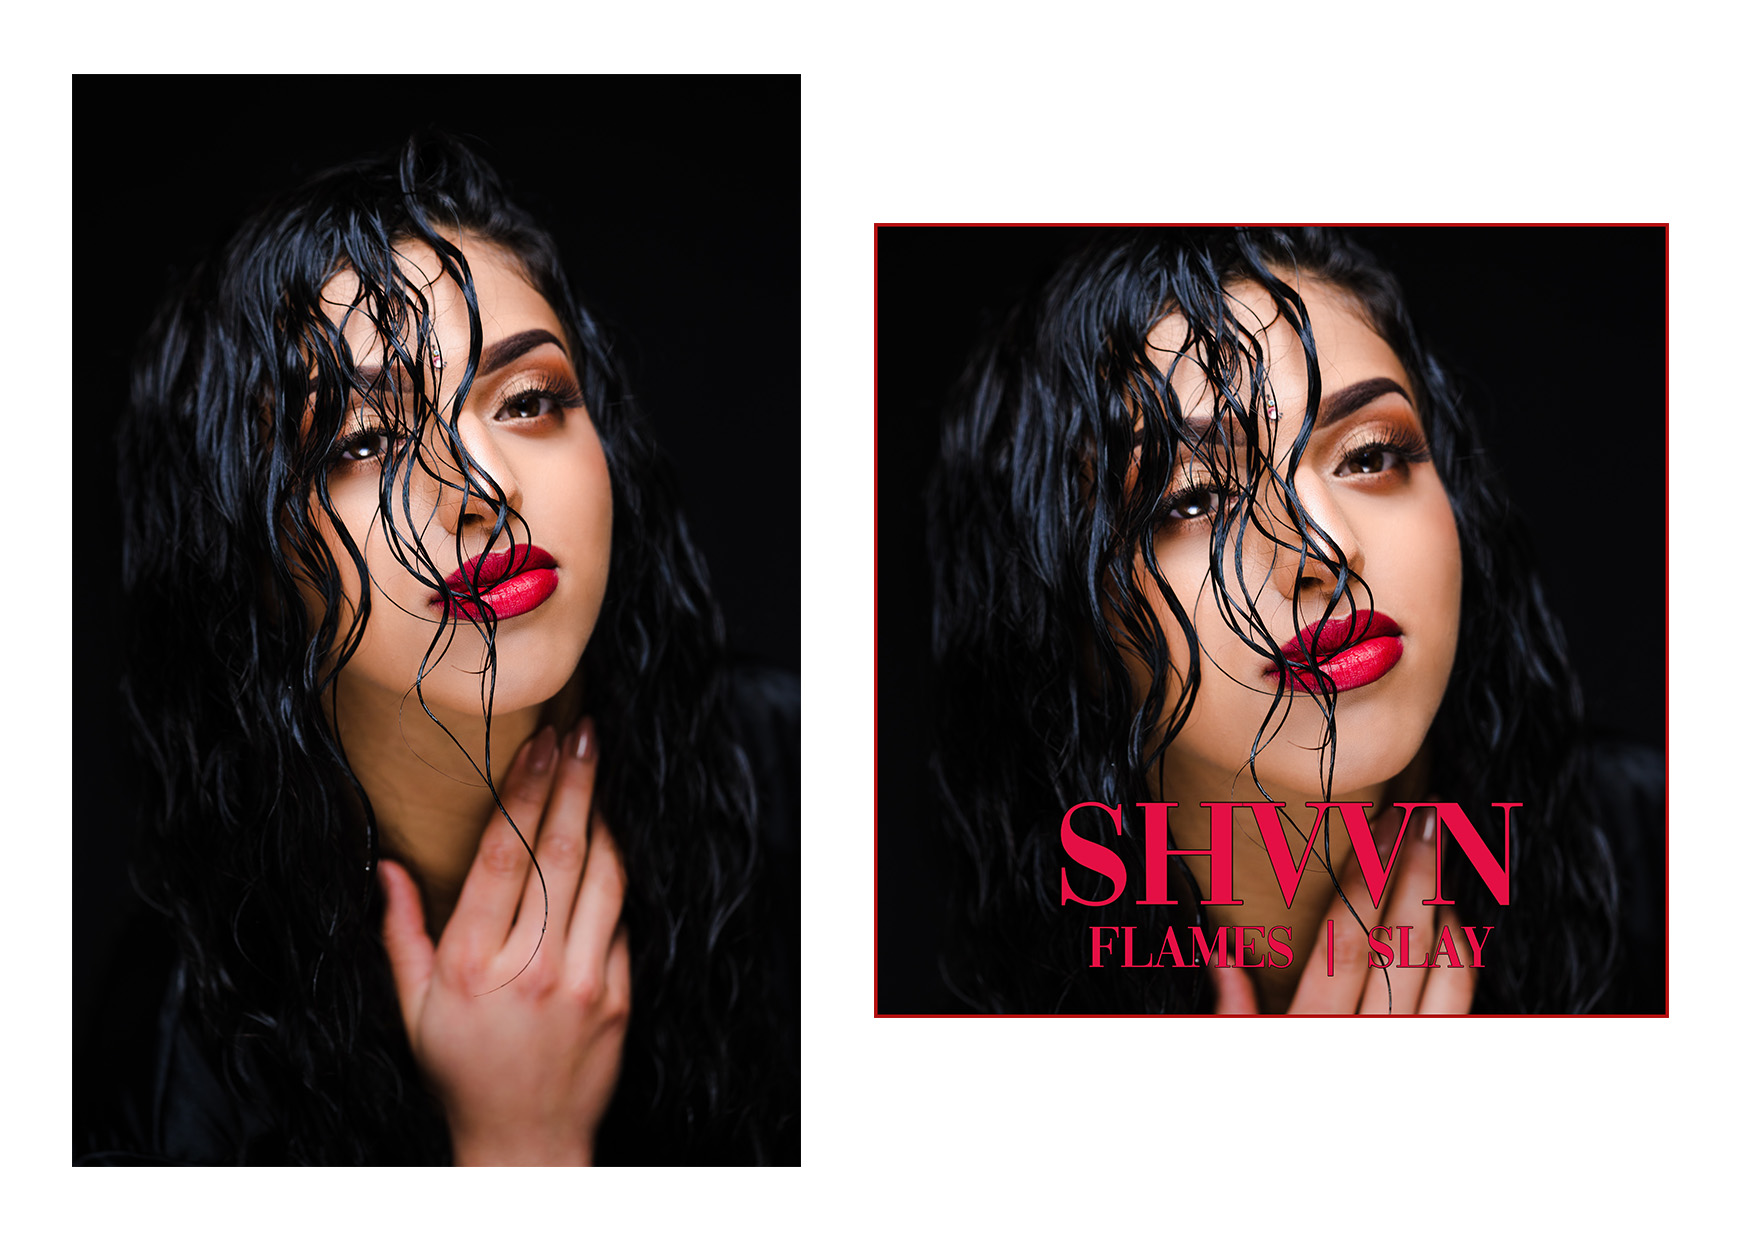 SHVVN - FLAMES ALBUM ART WORK